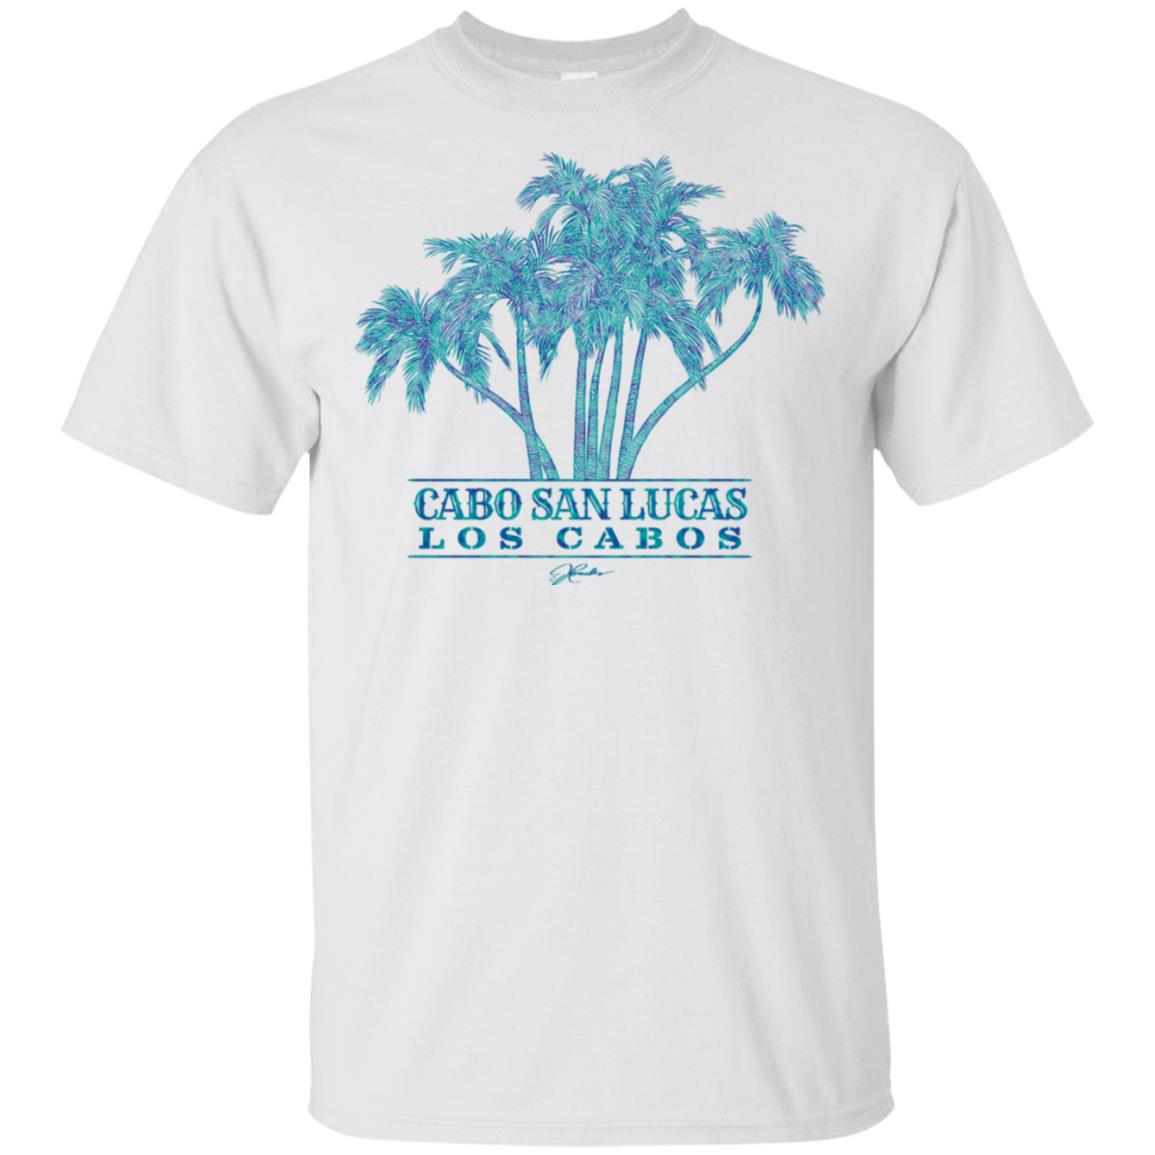 JCombs Cabo San Lucas, Los Cabos, Palm Trees Unisex Short Sleeve